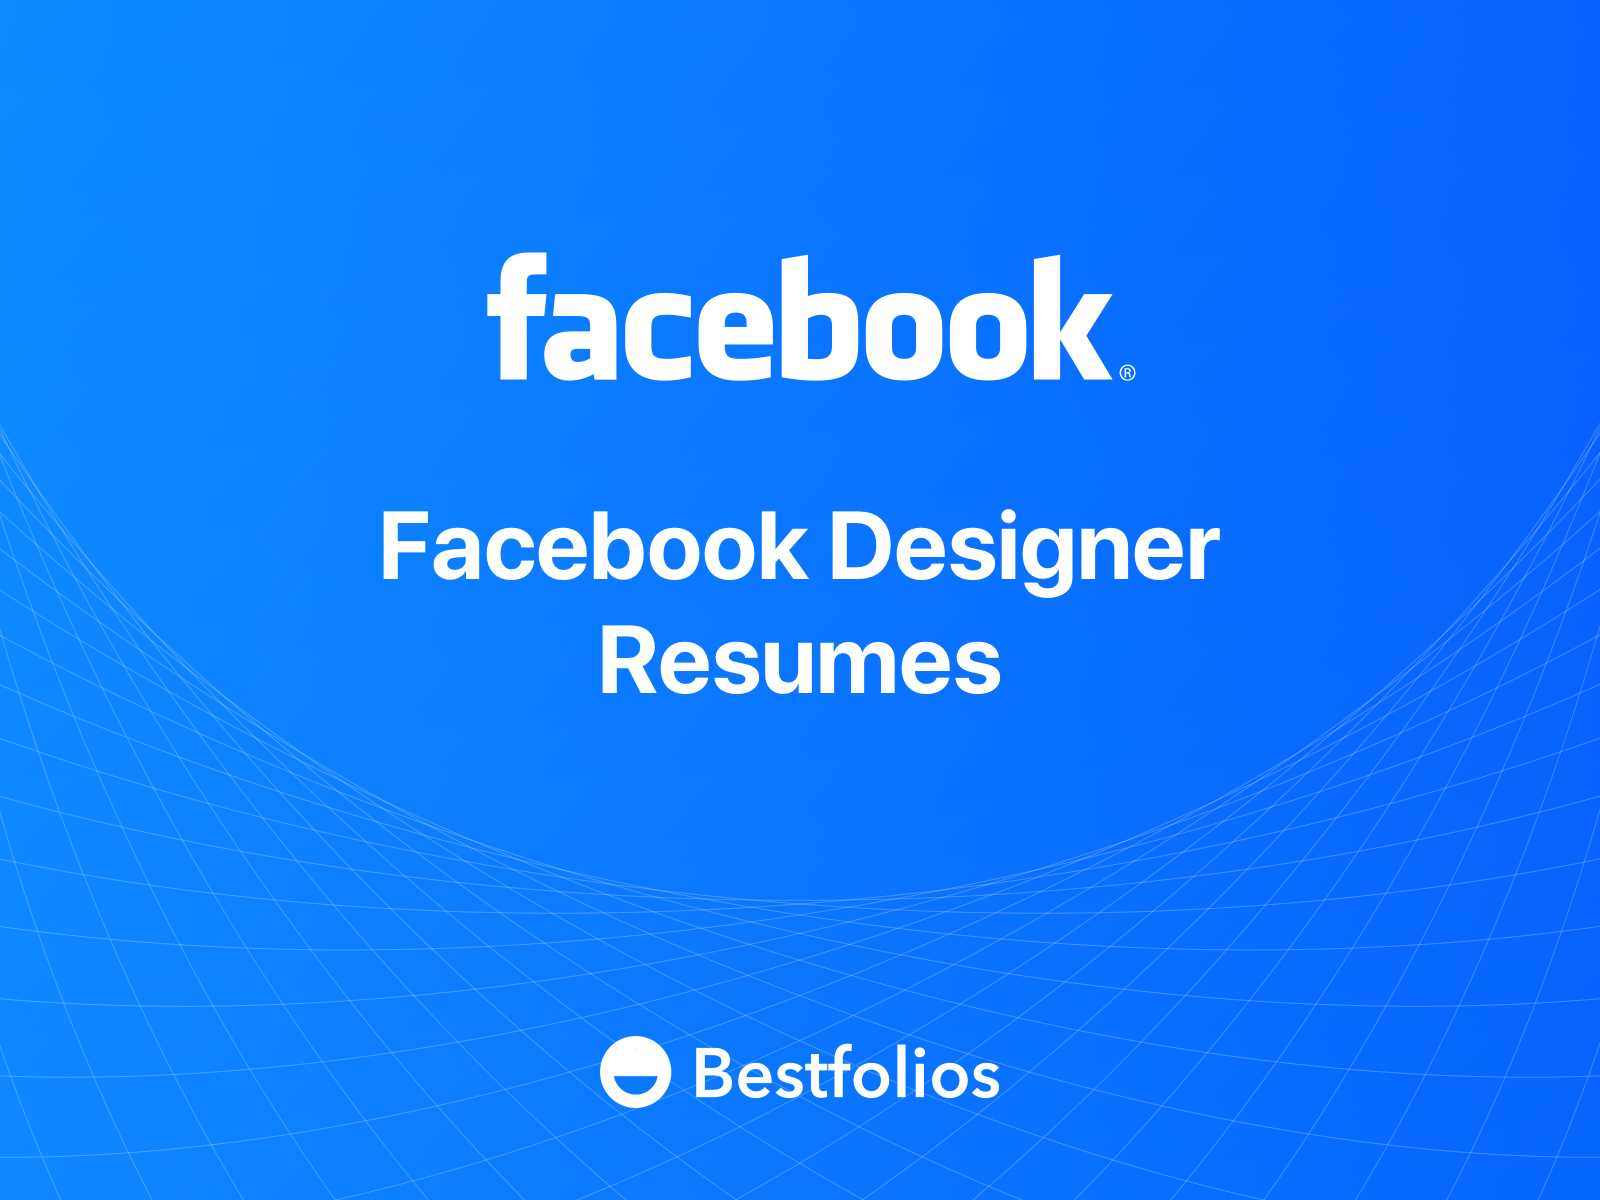 8 Outstanding Resumes That Passed Facebook Product Designers Bar